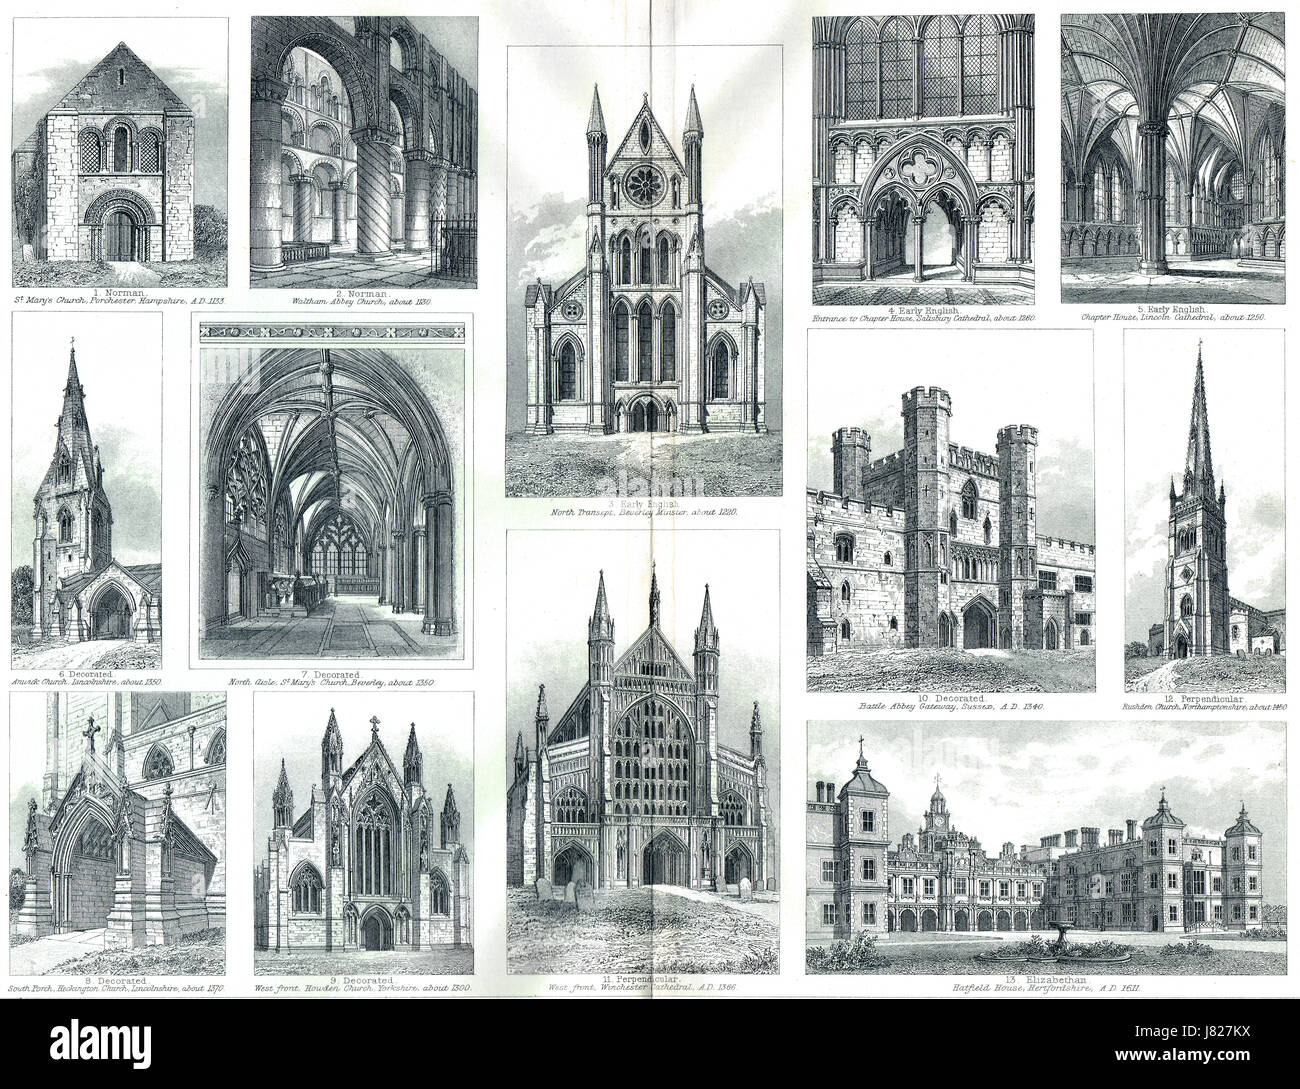 Gothic architecture development in England - Stock Image